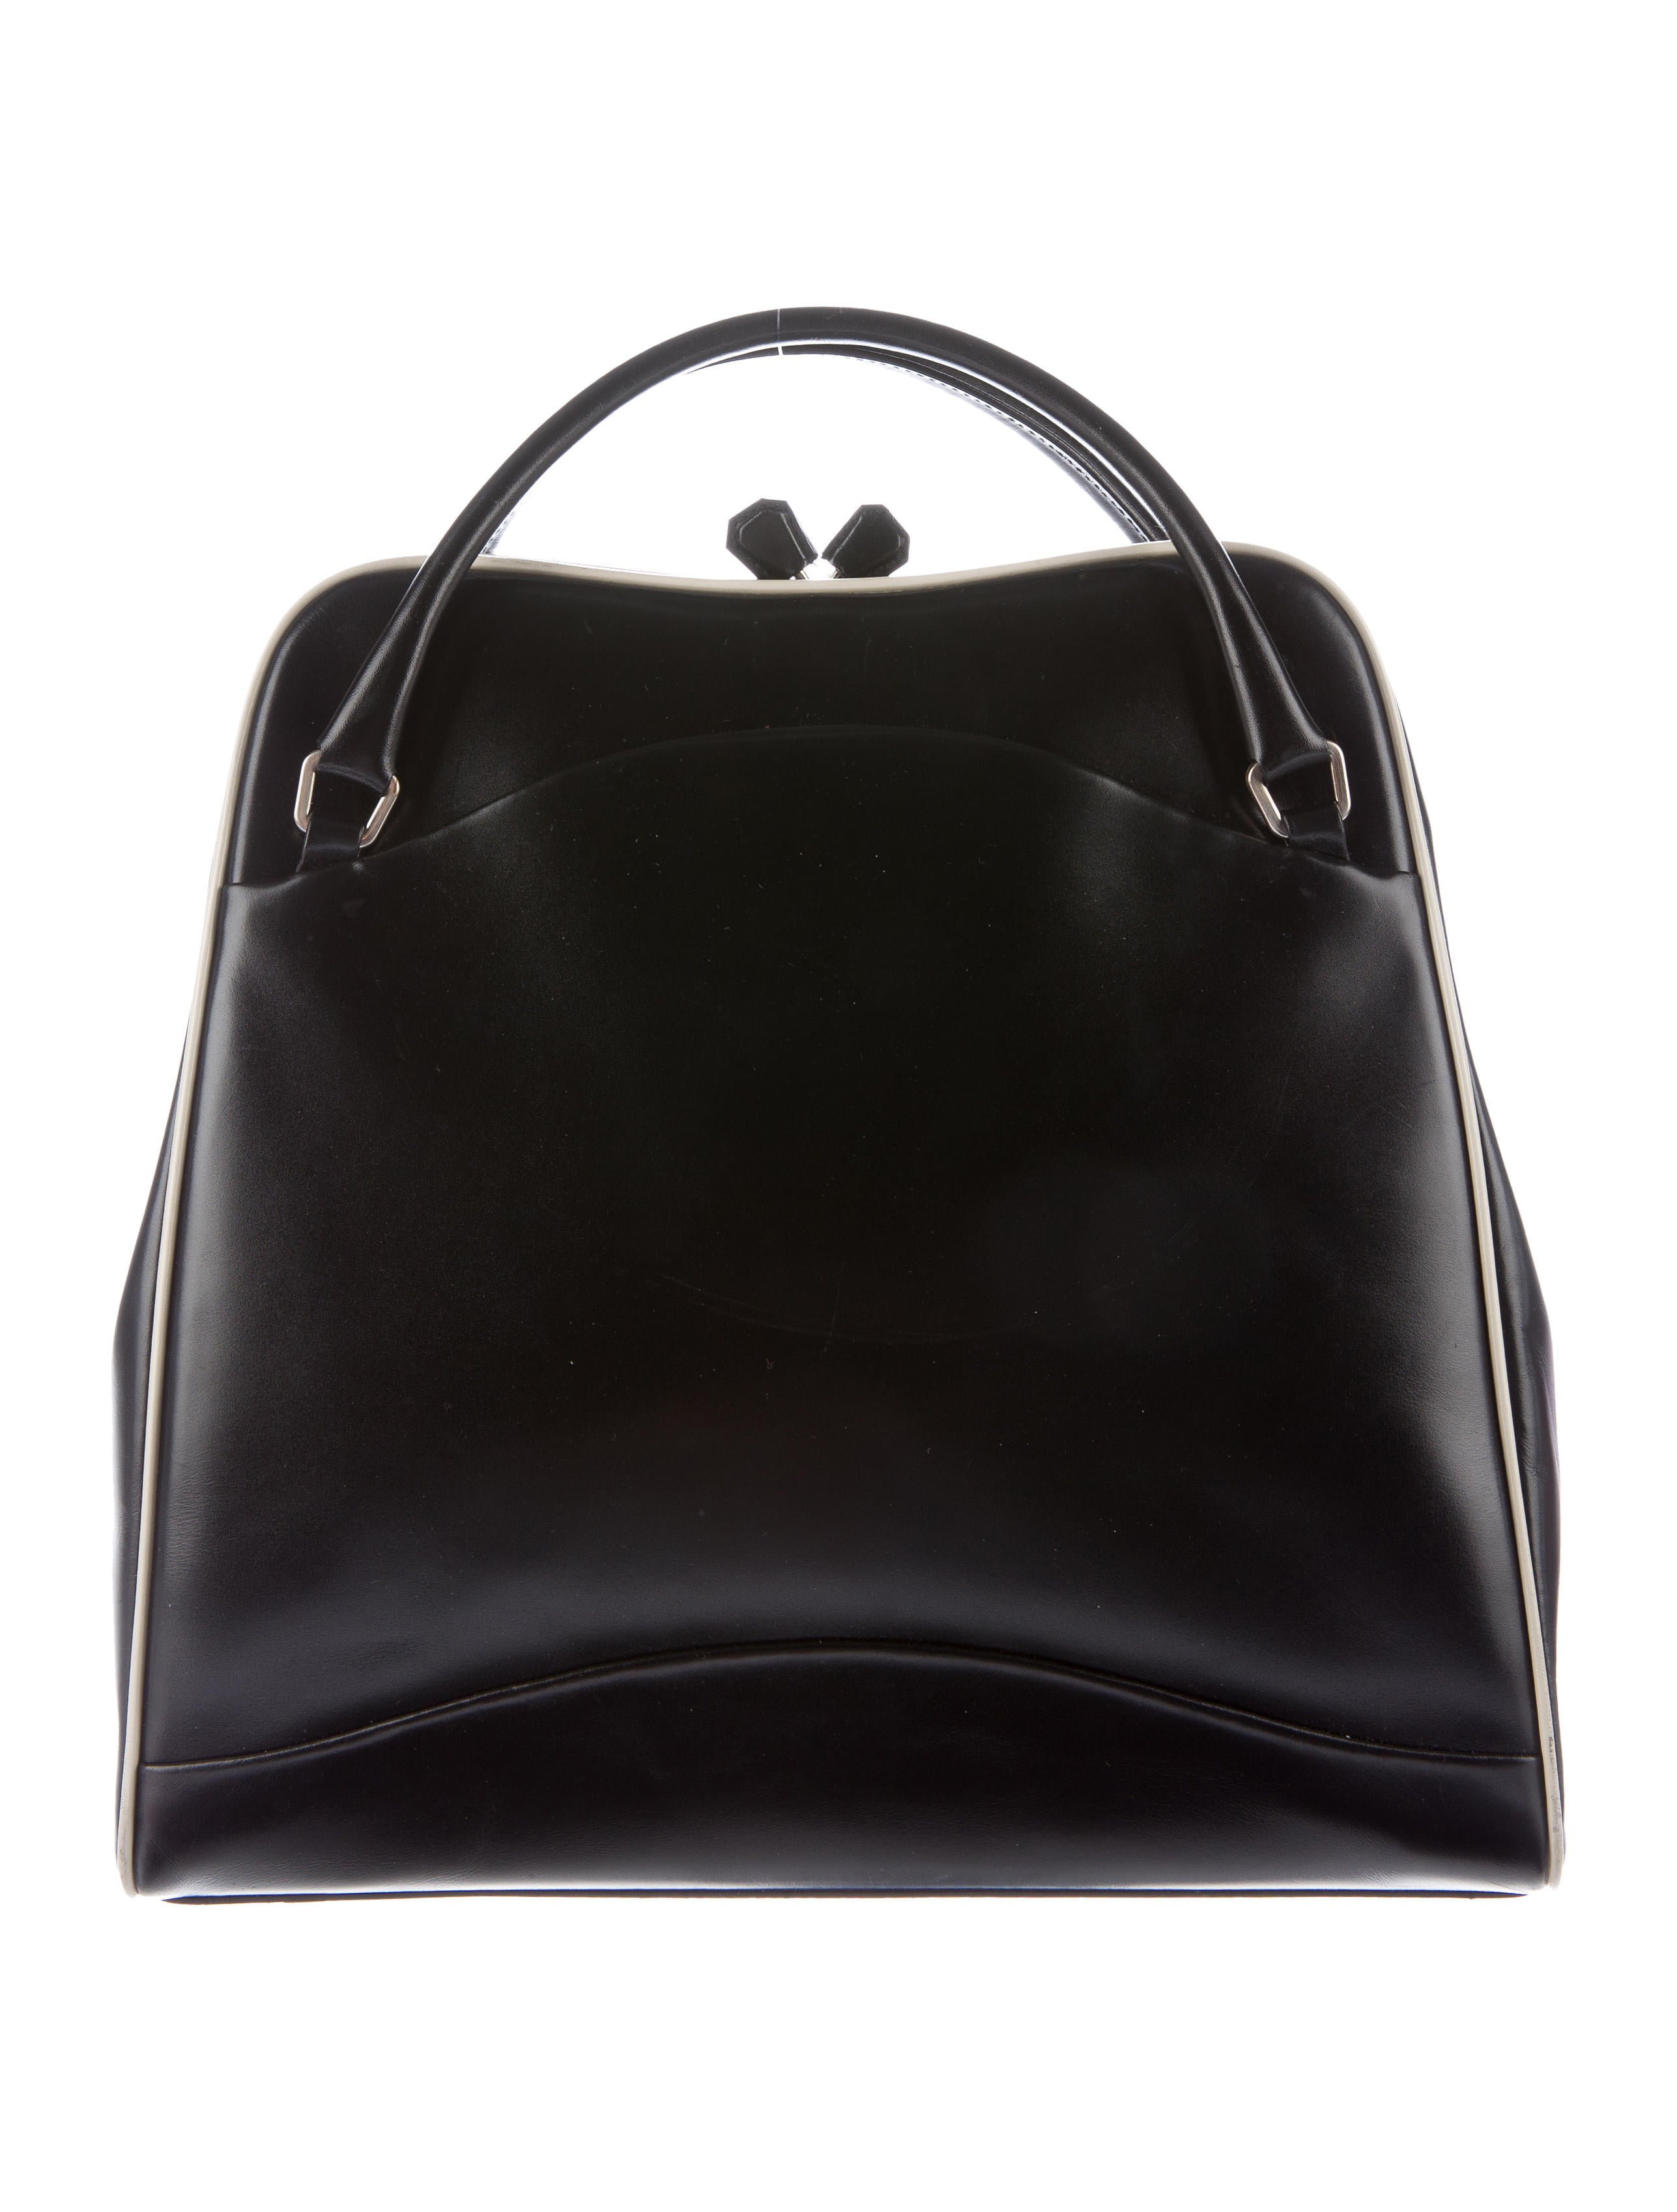 4c0f3641bf57 Prada Bag With Wood Handle | Stanford Center for Opportunity Policy ...